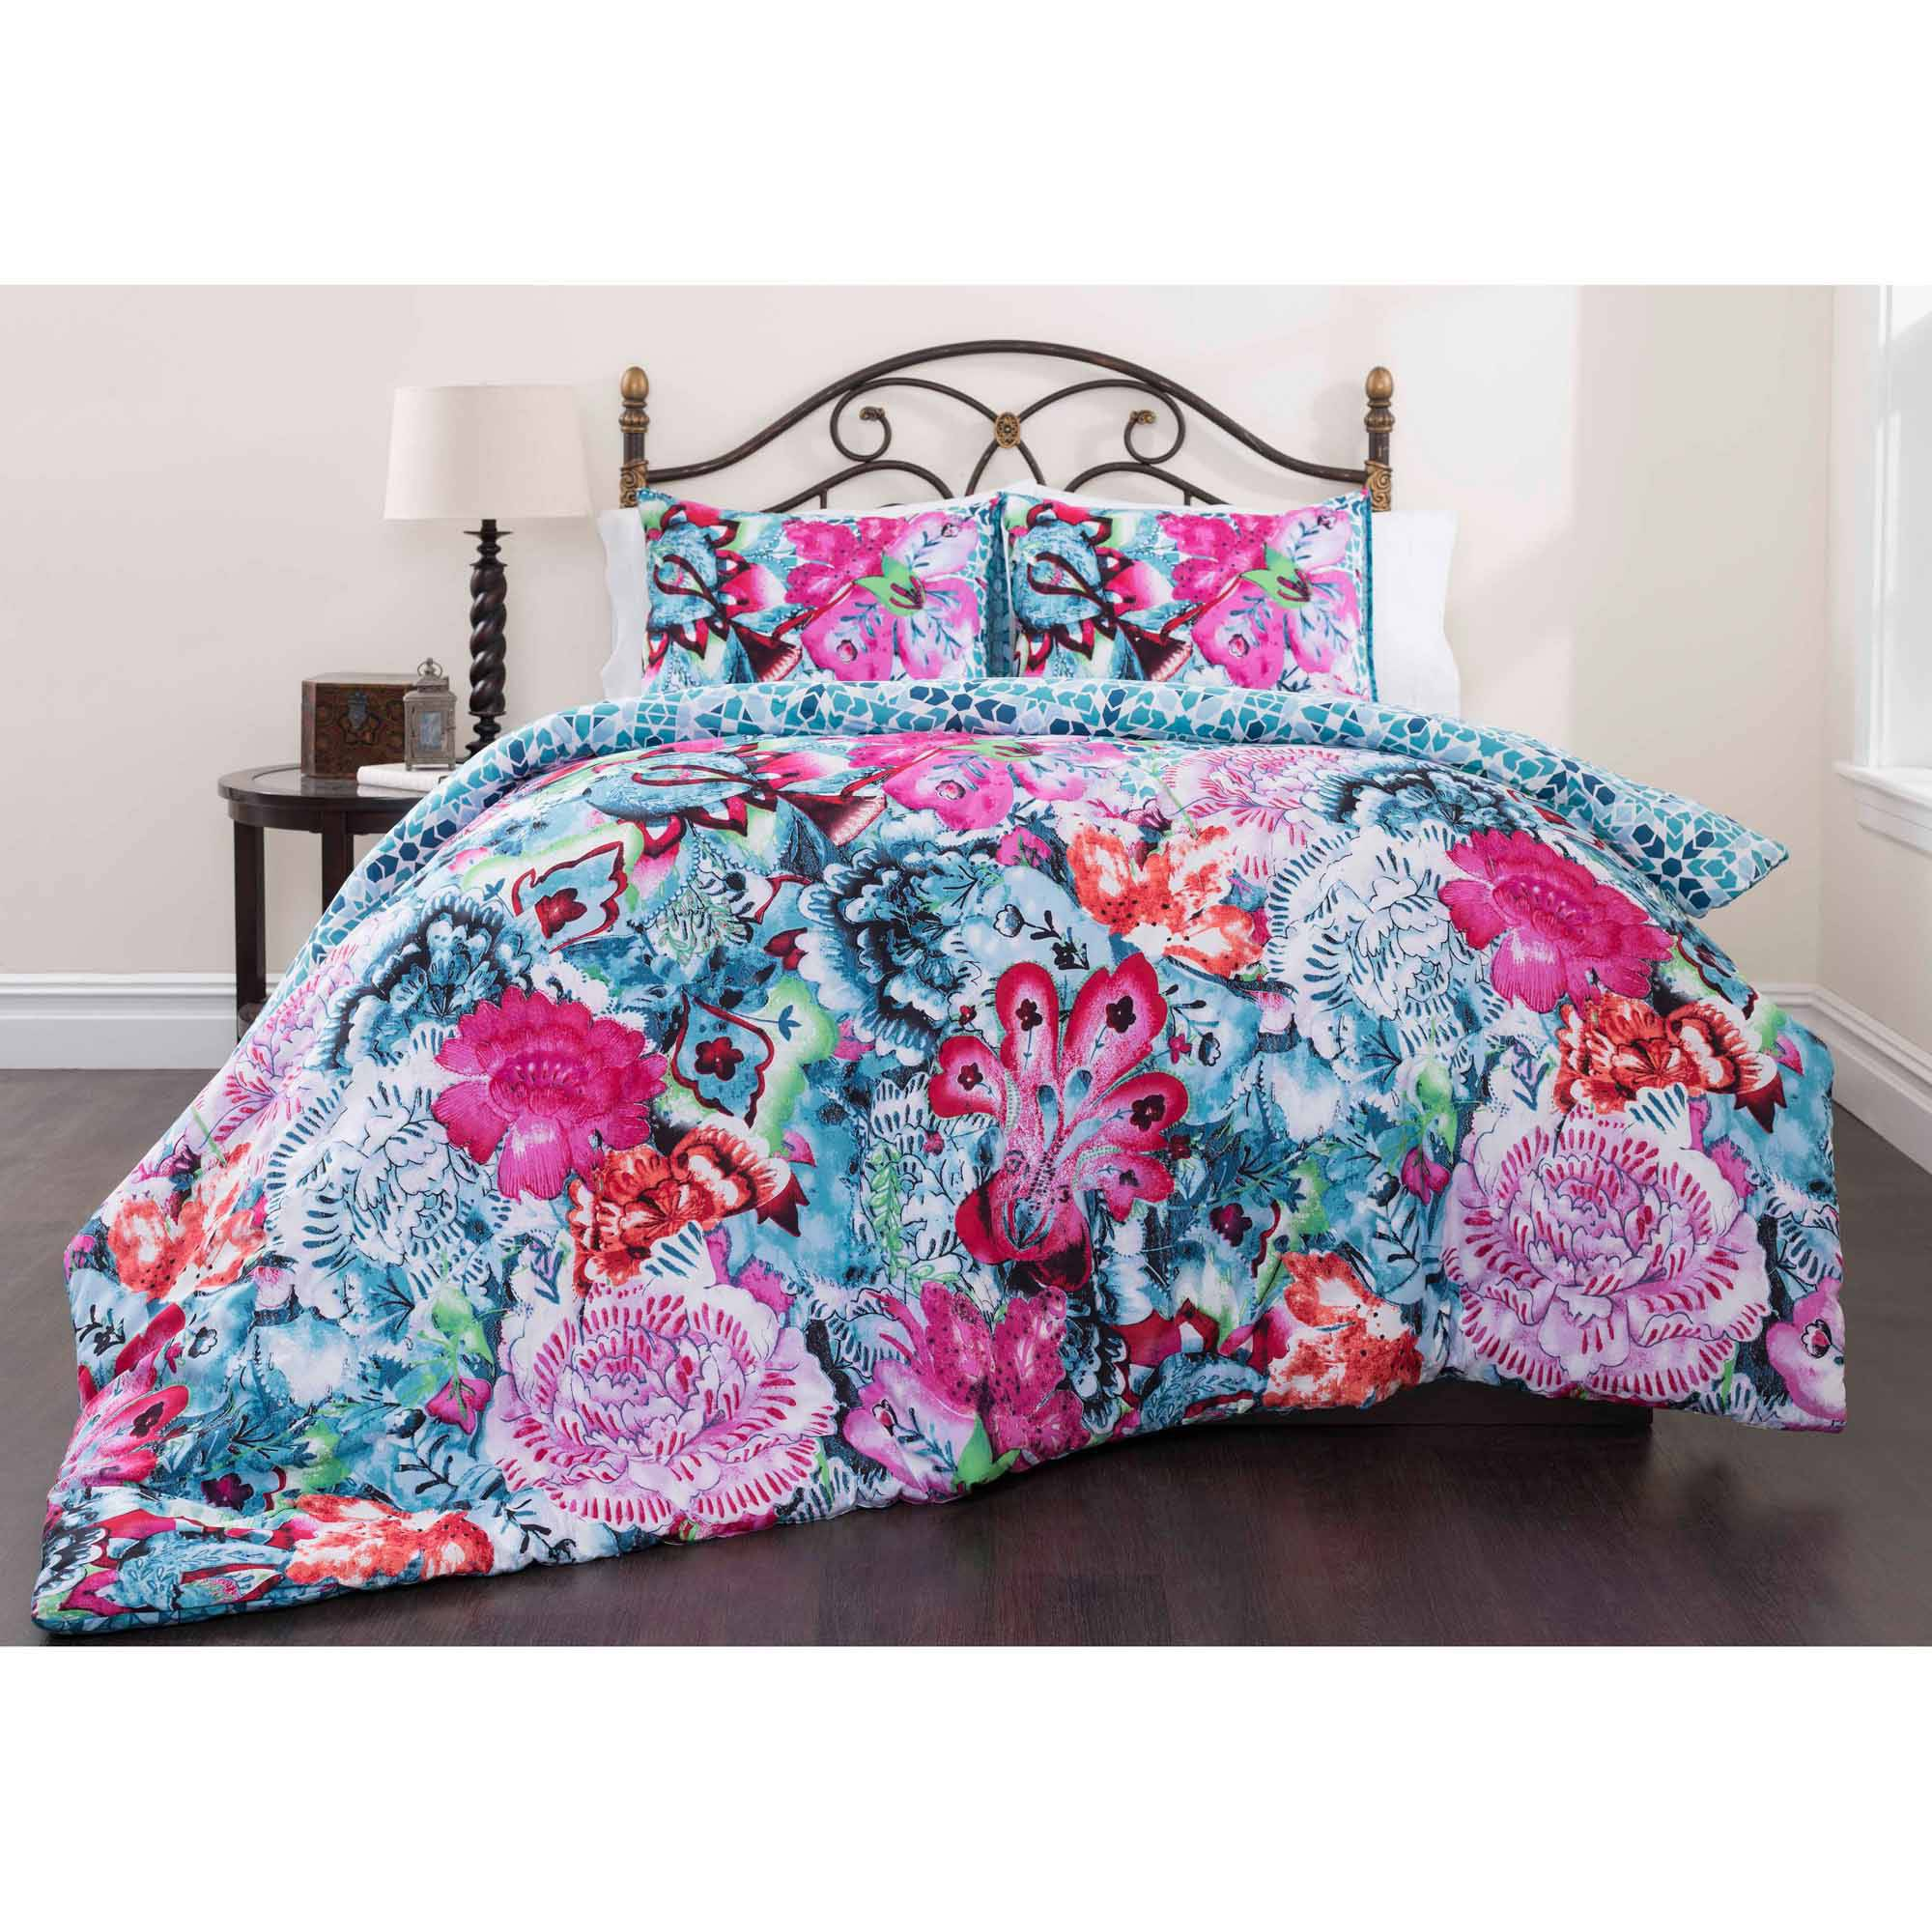 Mosaic Garden Bedding Duvet Cover Set